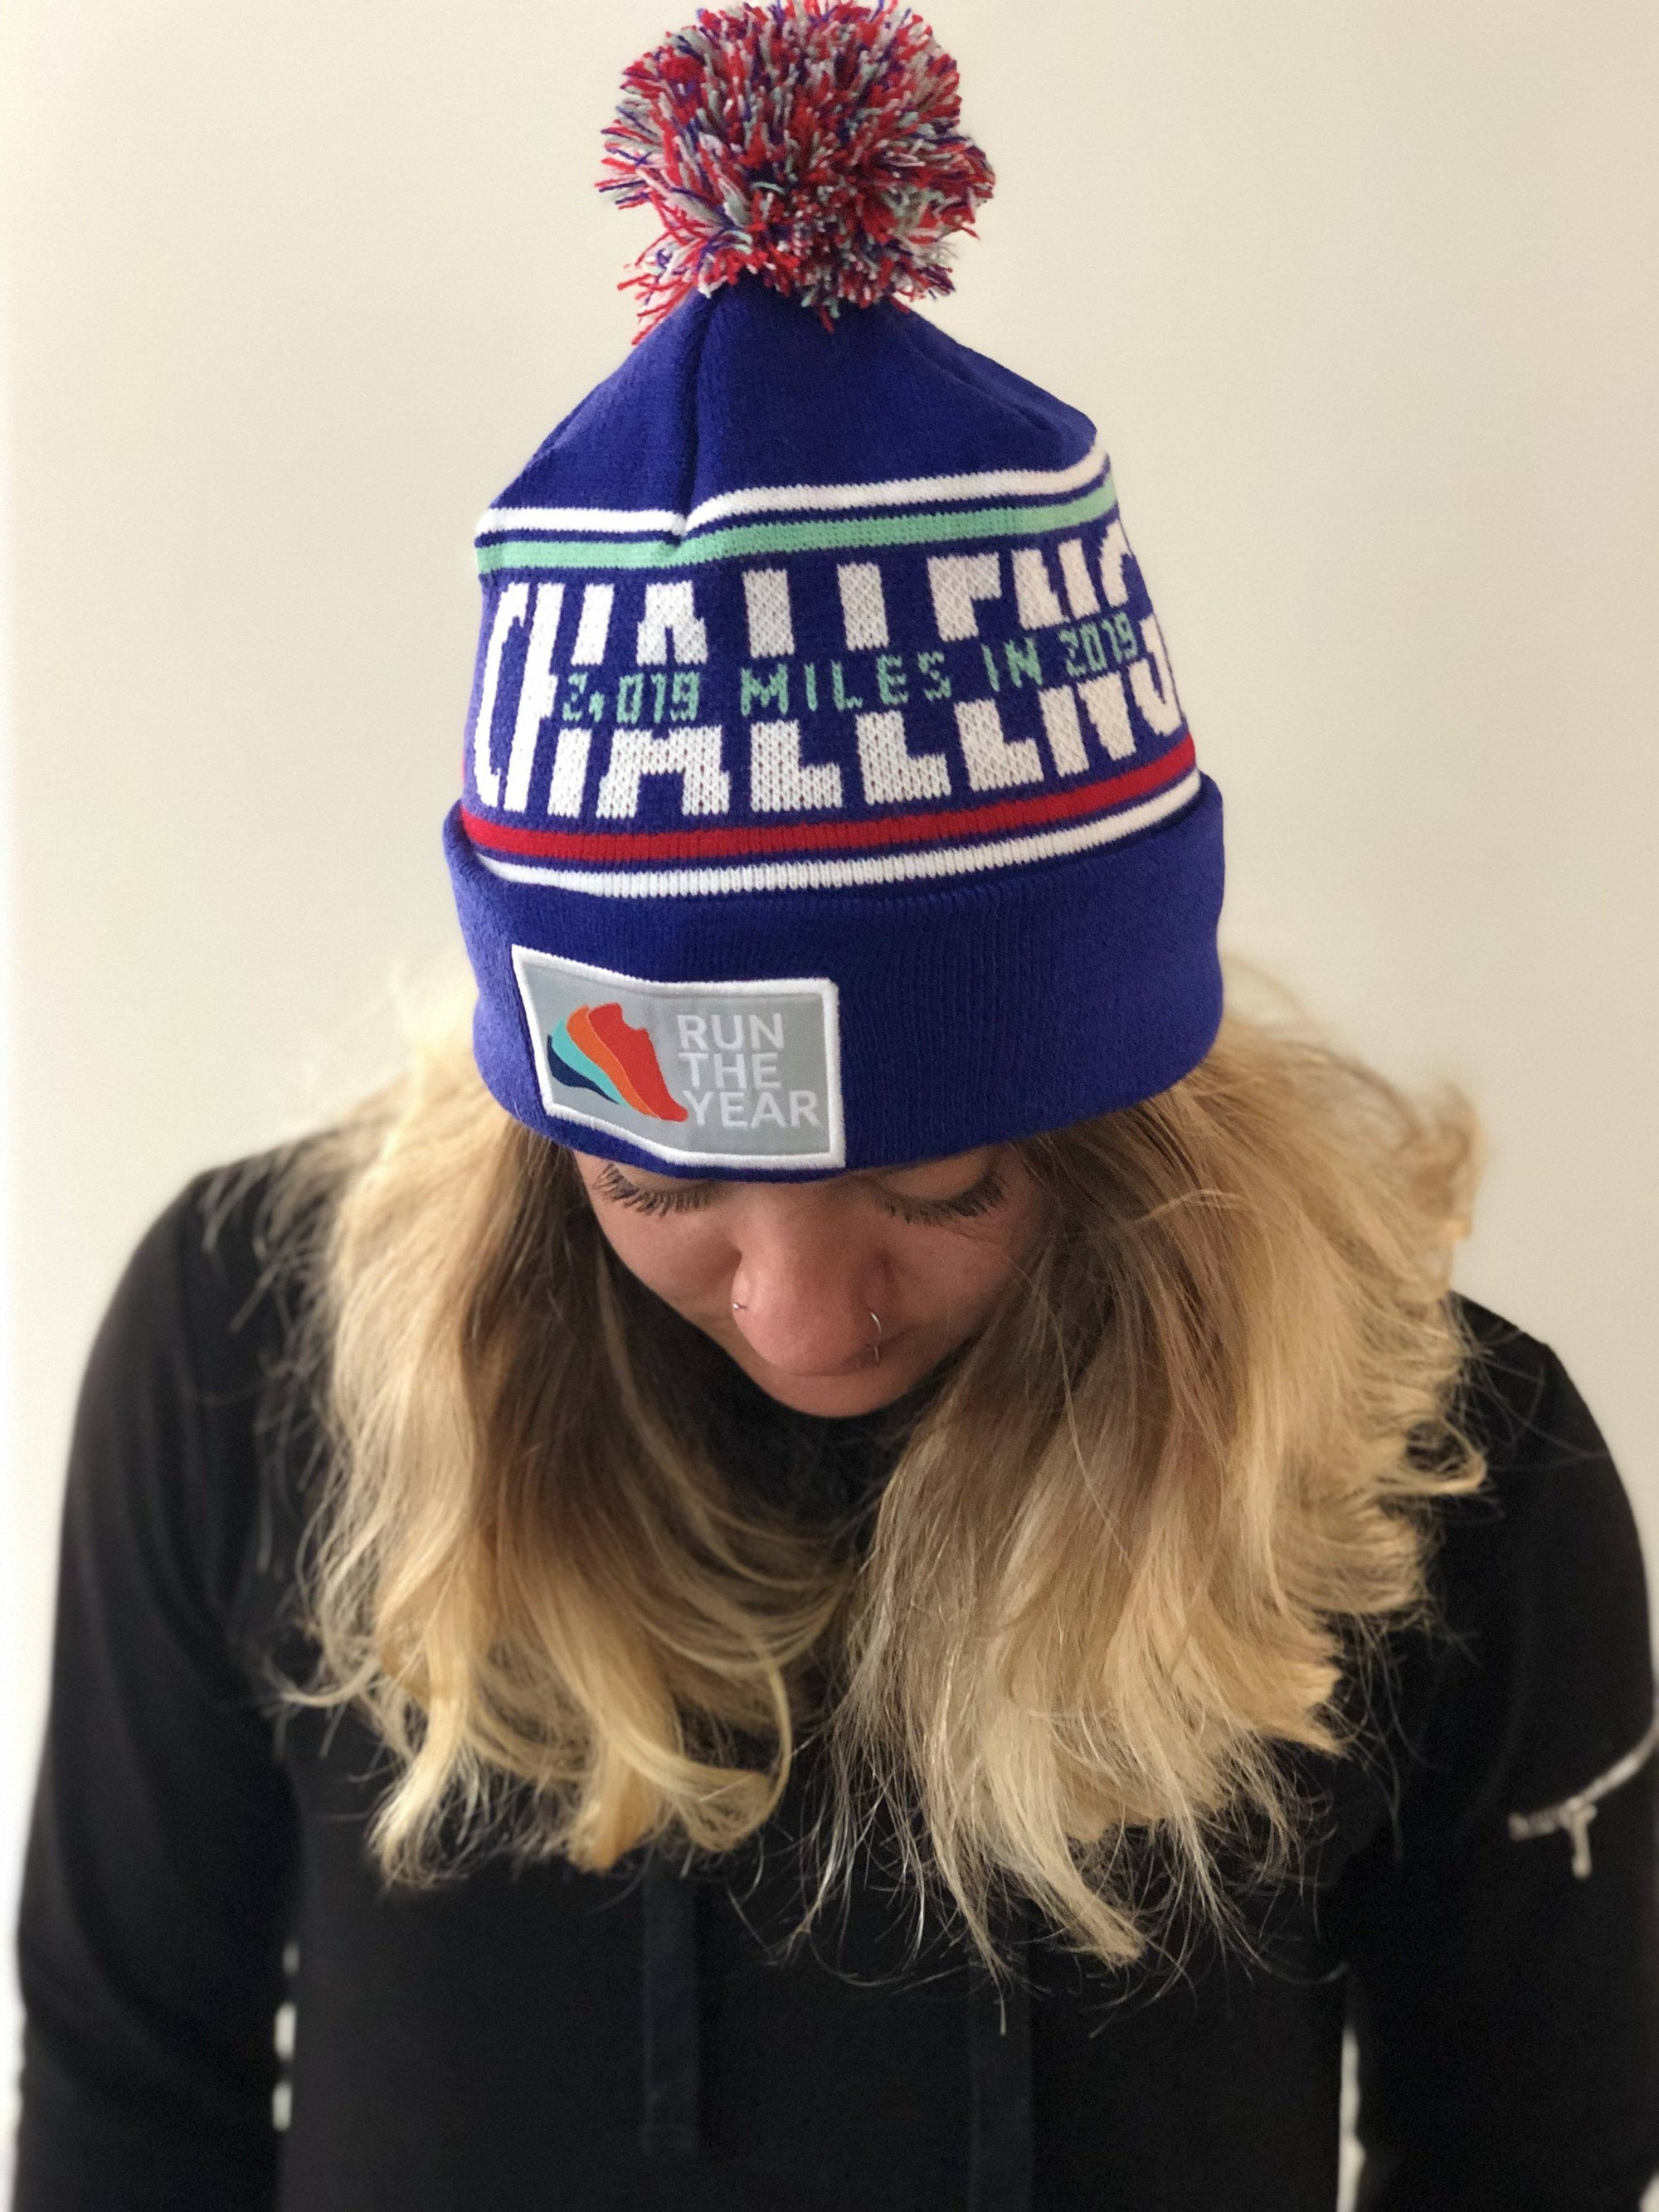 Run The Year 2019 Pom Pom Beanie Accessories Run The Edge